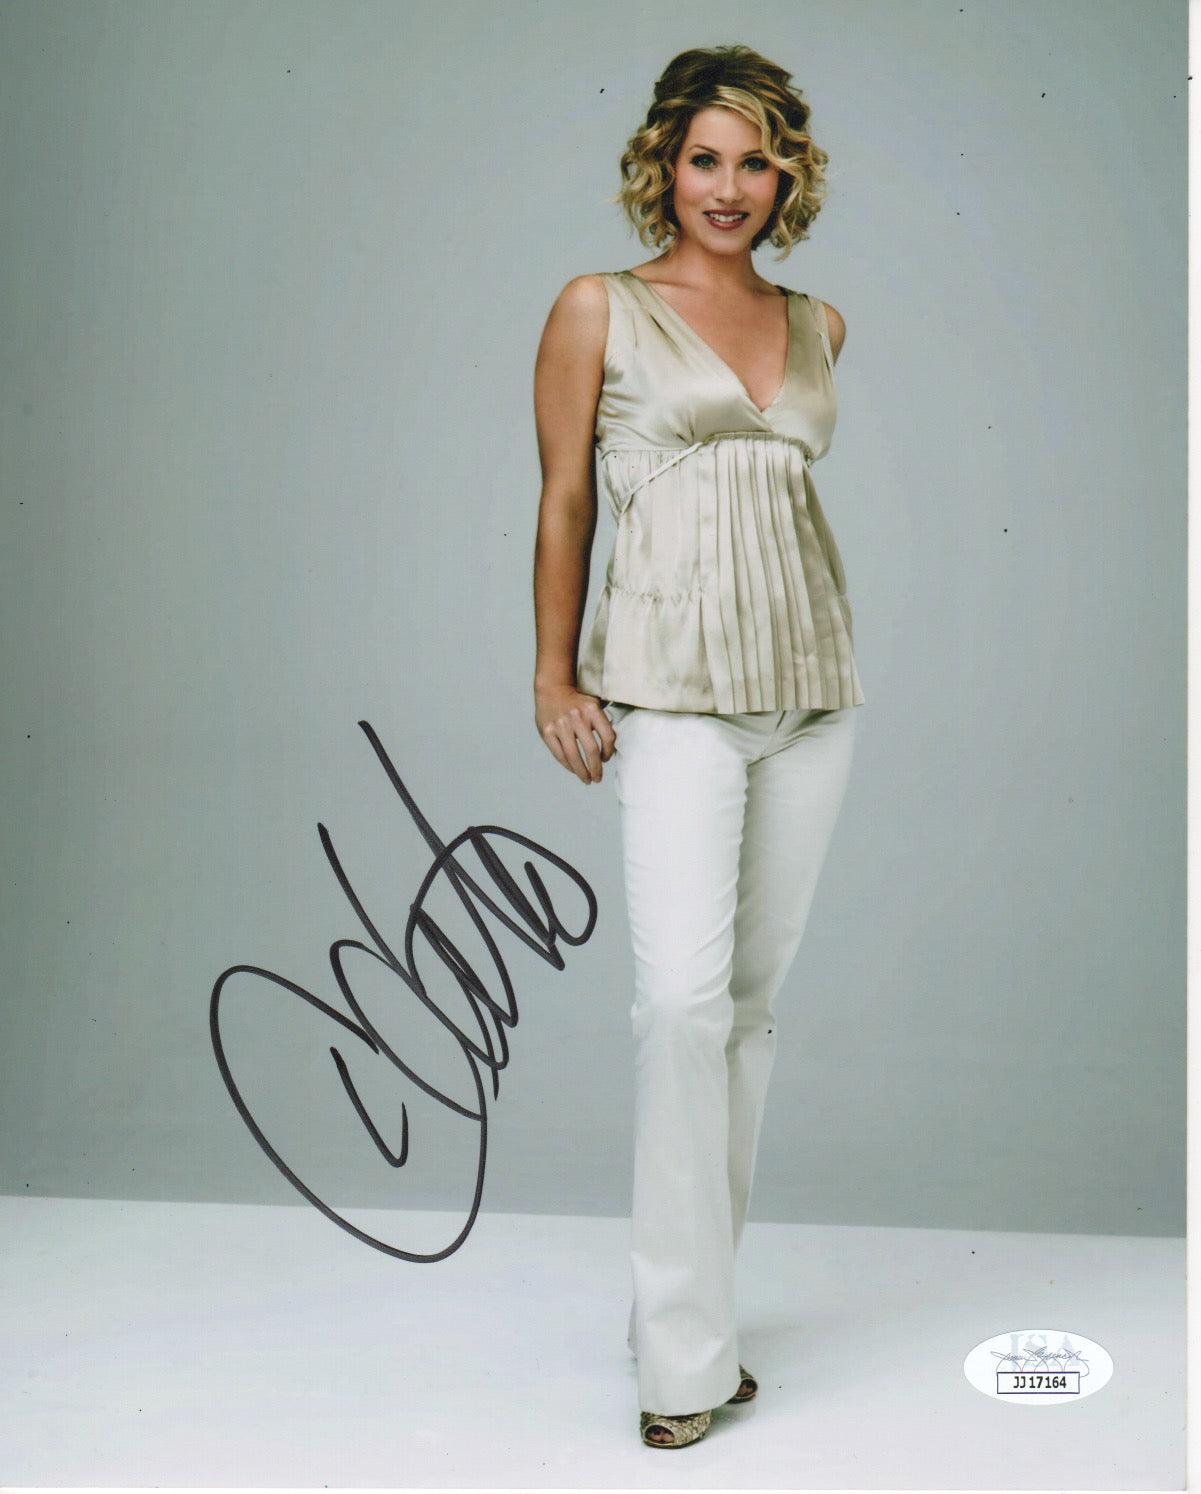 Christina Applegate Sexy Signed Autograph 8x10 JSA Photo #2 - Outlaw Hobbies Authentic Autographs